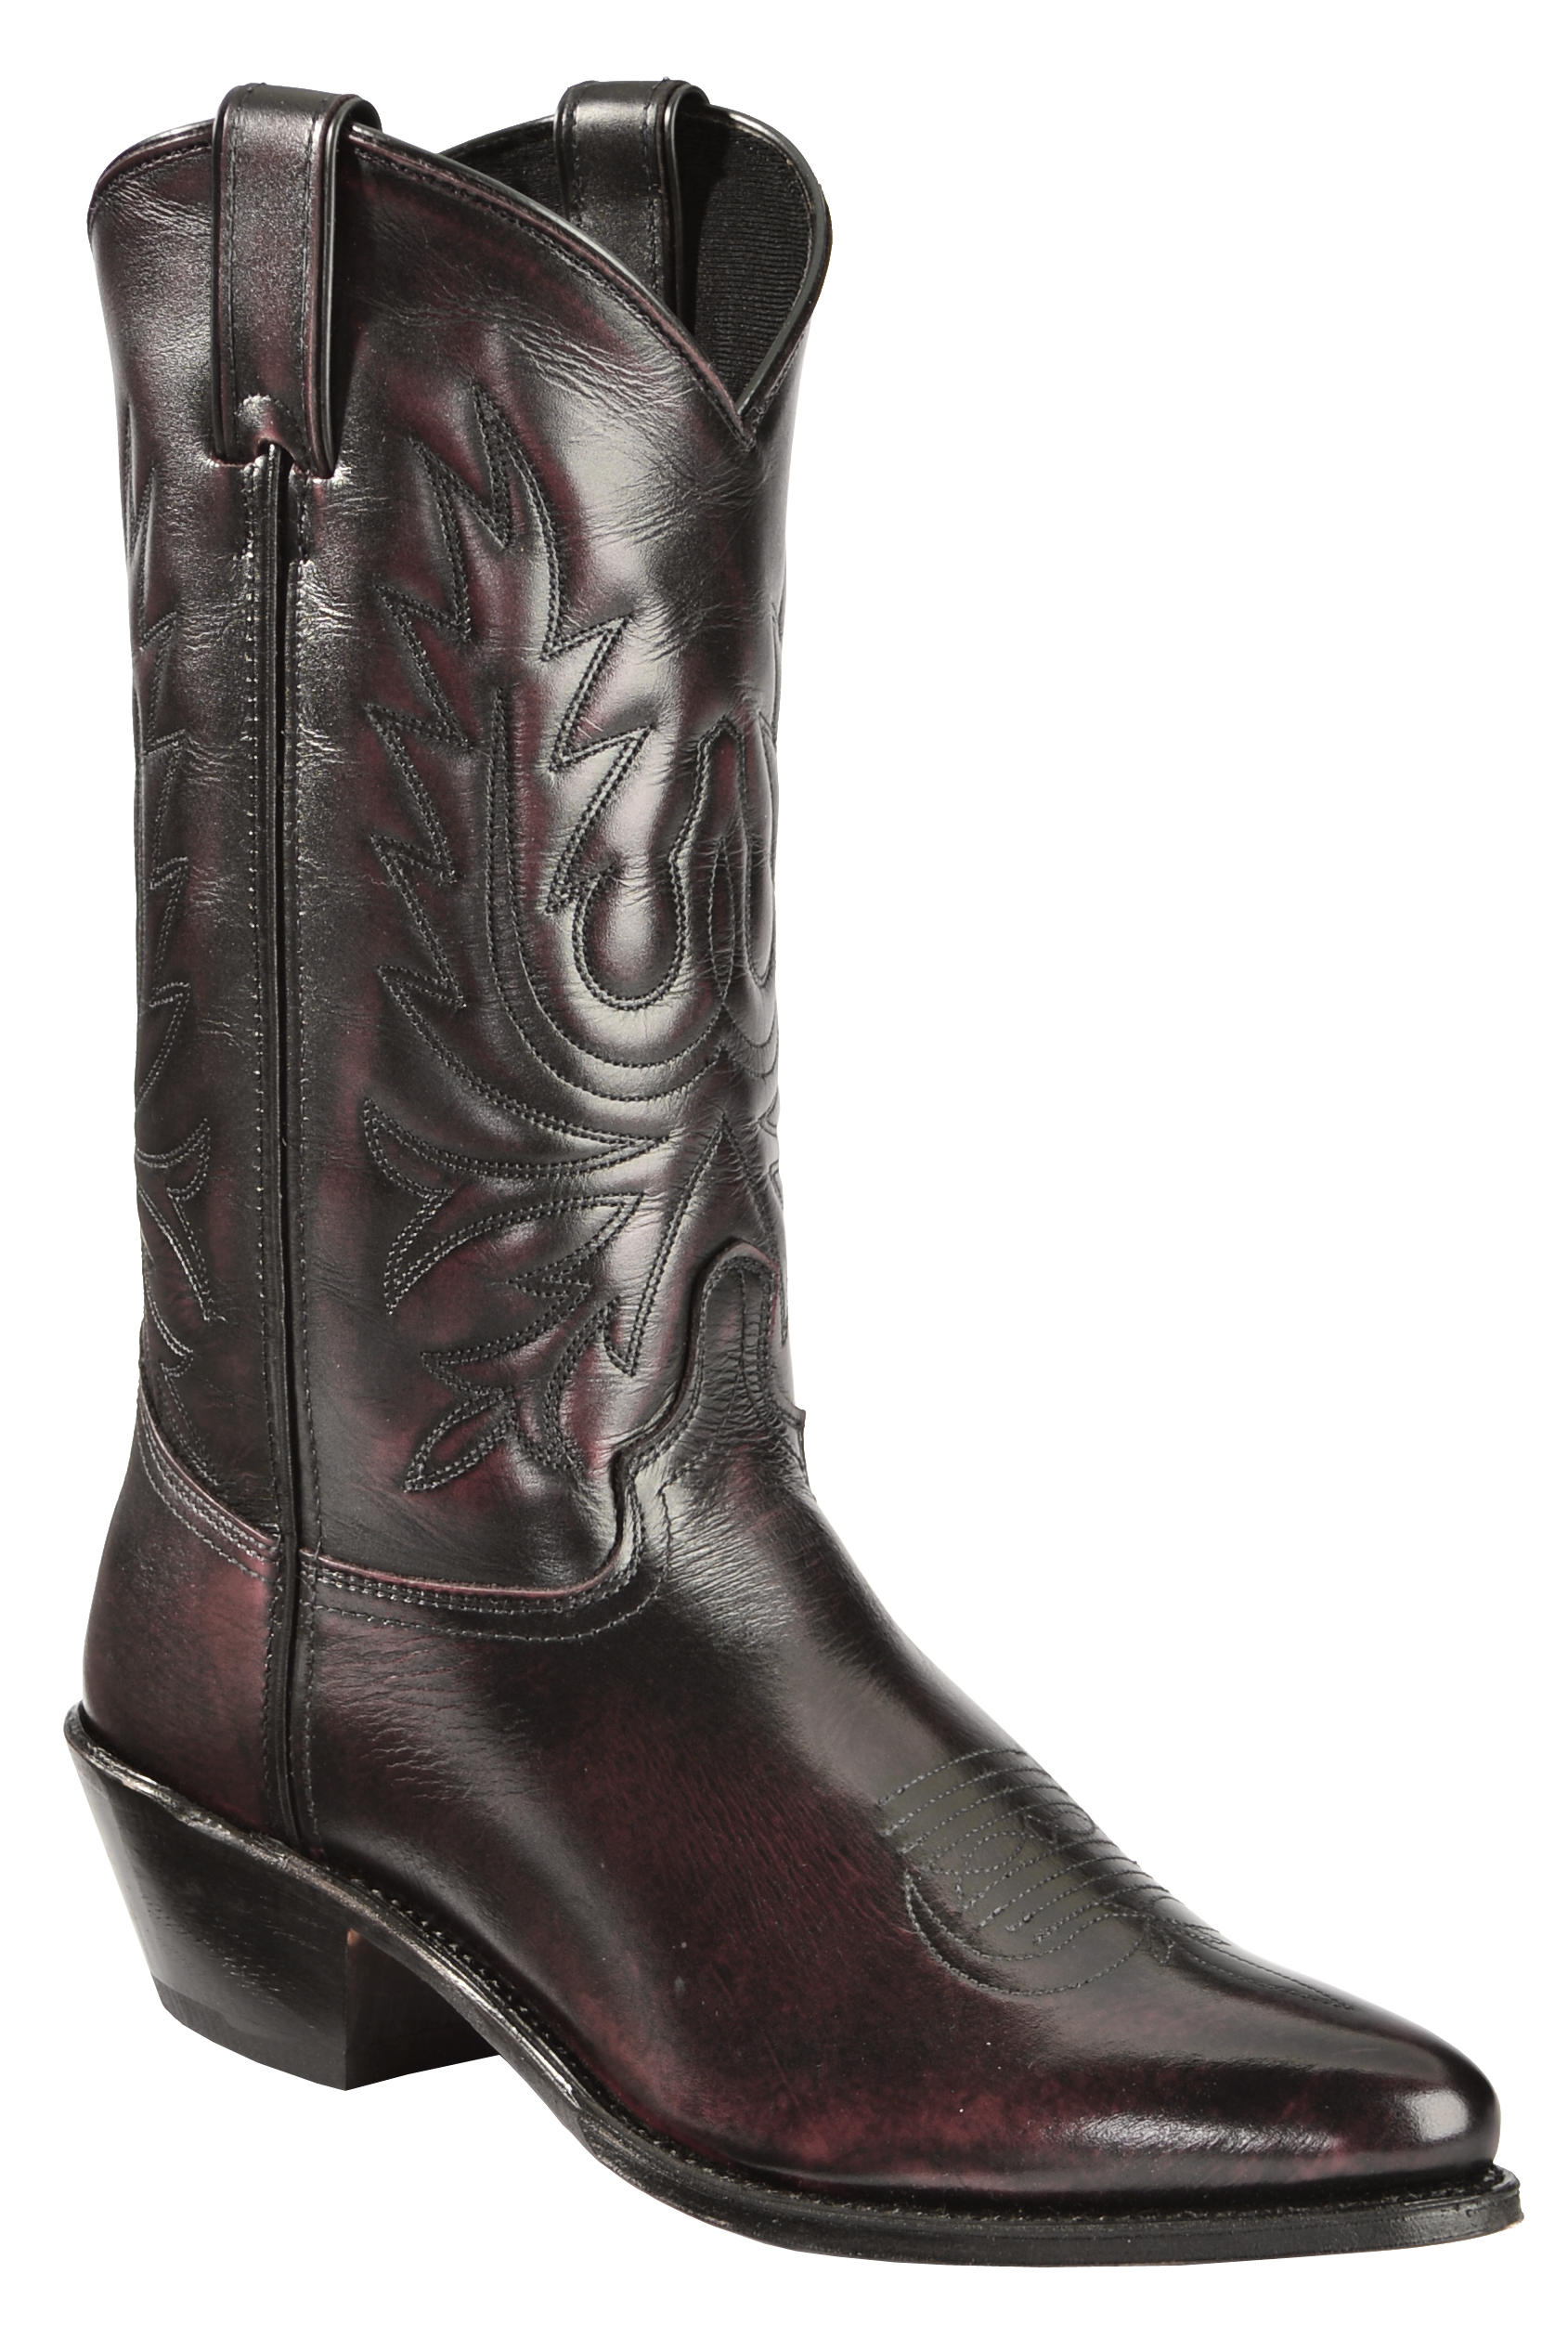 abilene black cherry polished cowhide boots medium toe